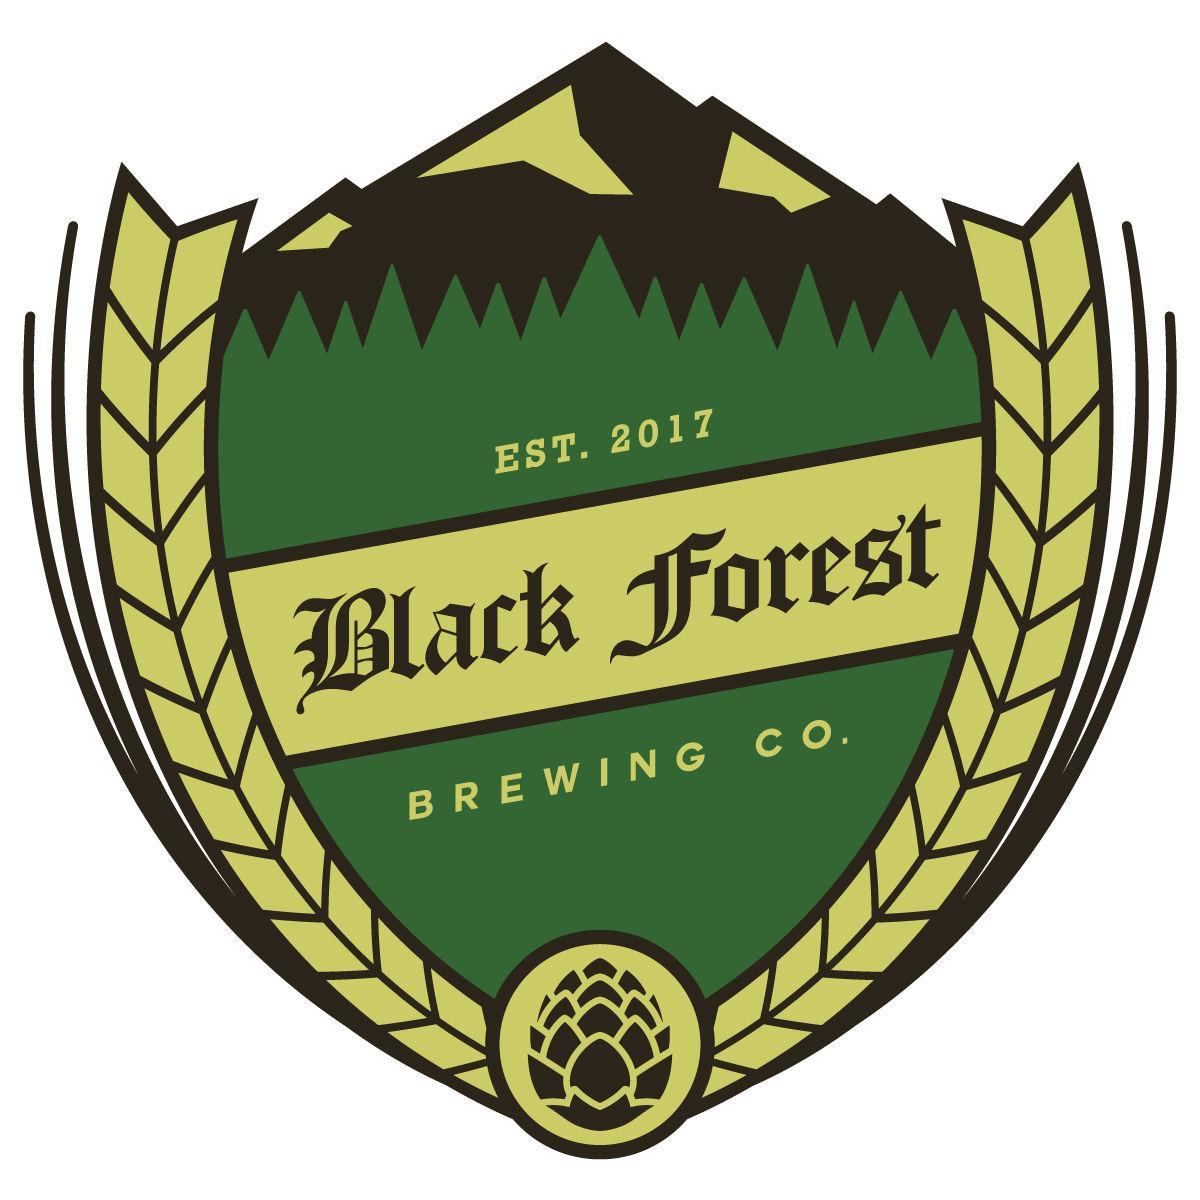 Pikes Pub: New craft brewery heading to Black Forest